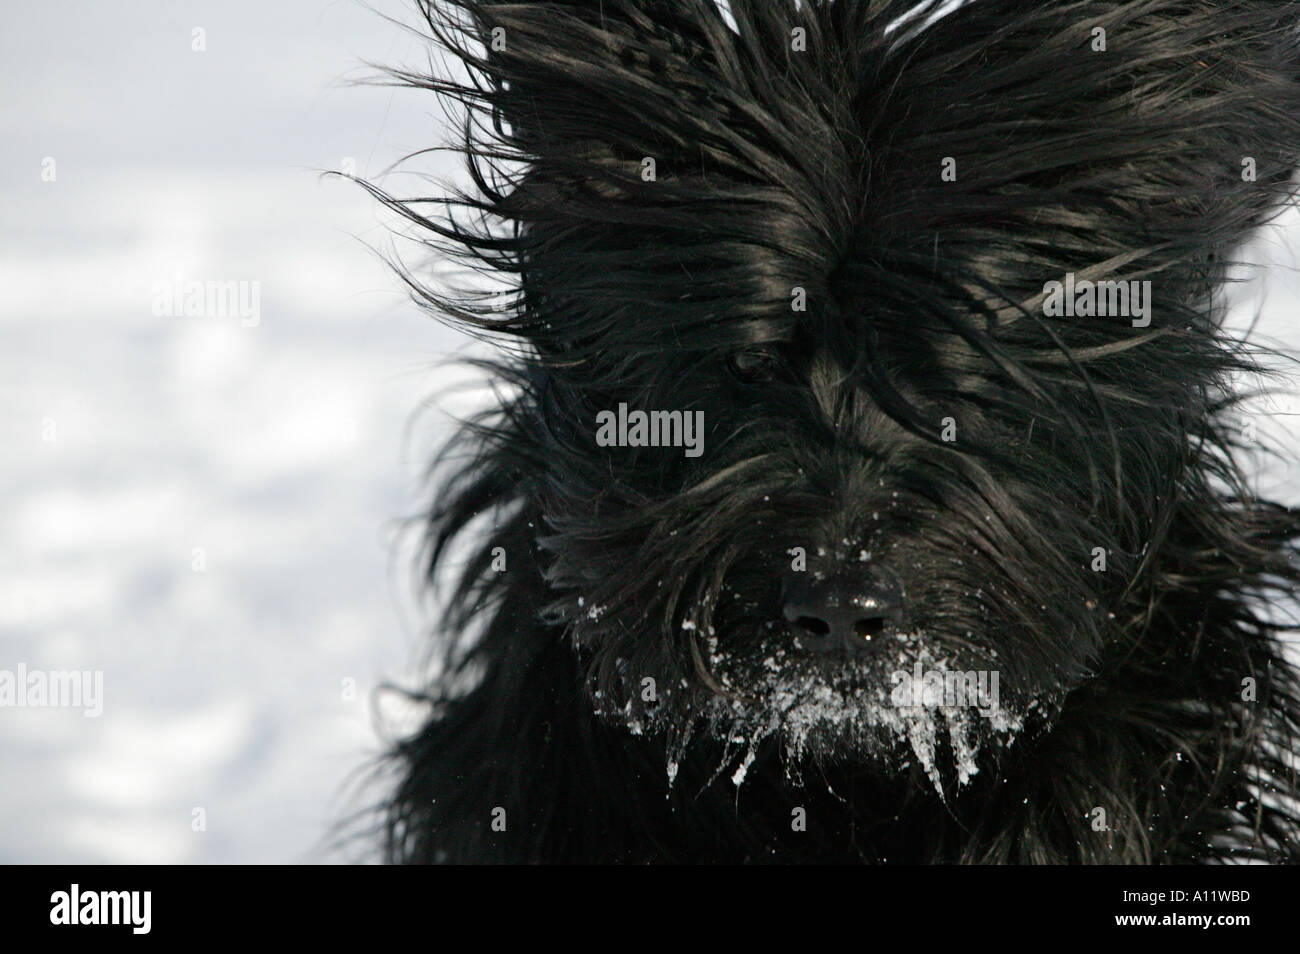 briard black dog running in snow with ice around nose and mouth blurred action released Stock Photo